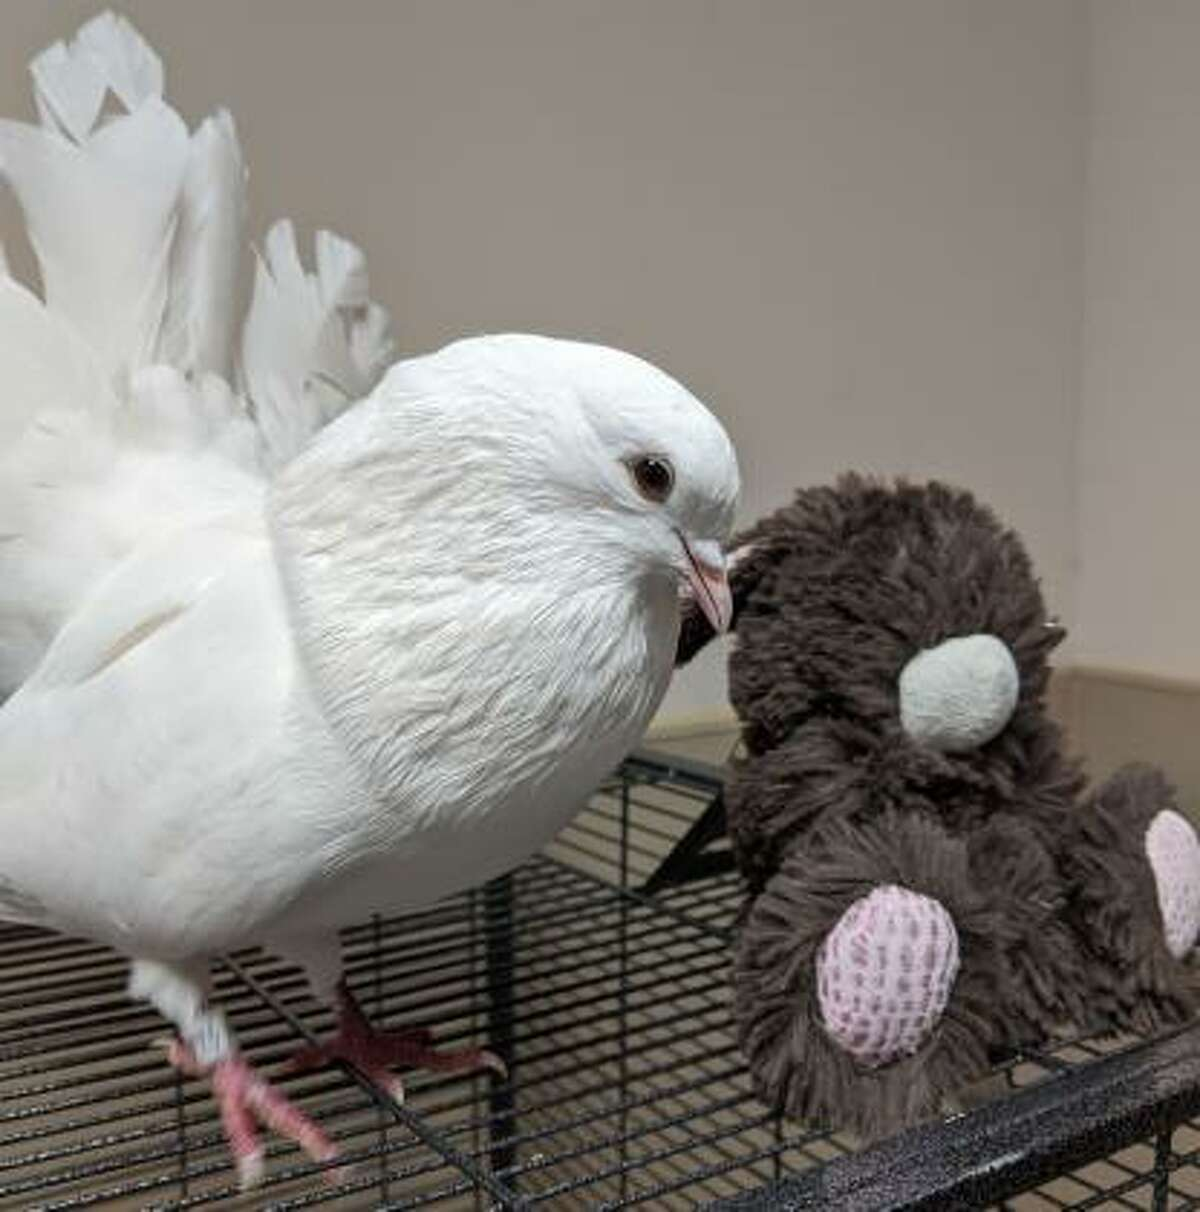 This is Echo, a white domesticated pigeon, who is seen here with his best friend, a stuffed animal. They must go home together! Echo is easy to handle and is trained to step onto your hand. He is cooing quietly while waiting for his new family to adopt him.   Remember, the Connecticut Humane Society has no time limits for adoption. o learn more about operations during COVID-19, go to https://cthumane.org/adopt/adoption-process/. Applications for adoption can be obtained at https://cthumane.org/adopt/all-adoptable-pets/.